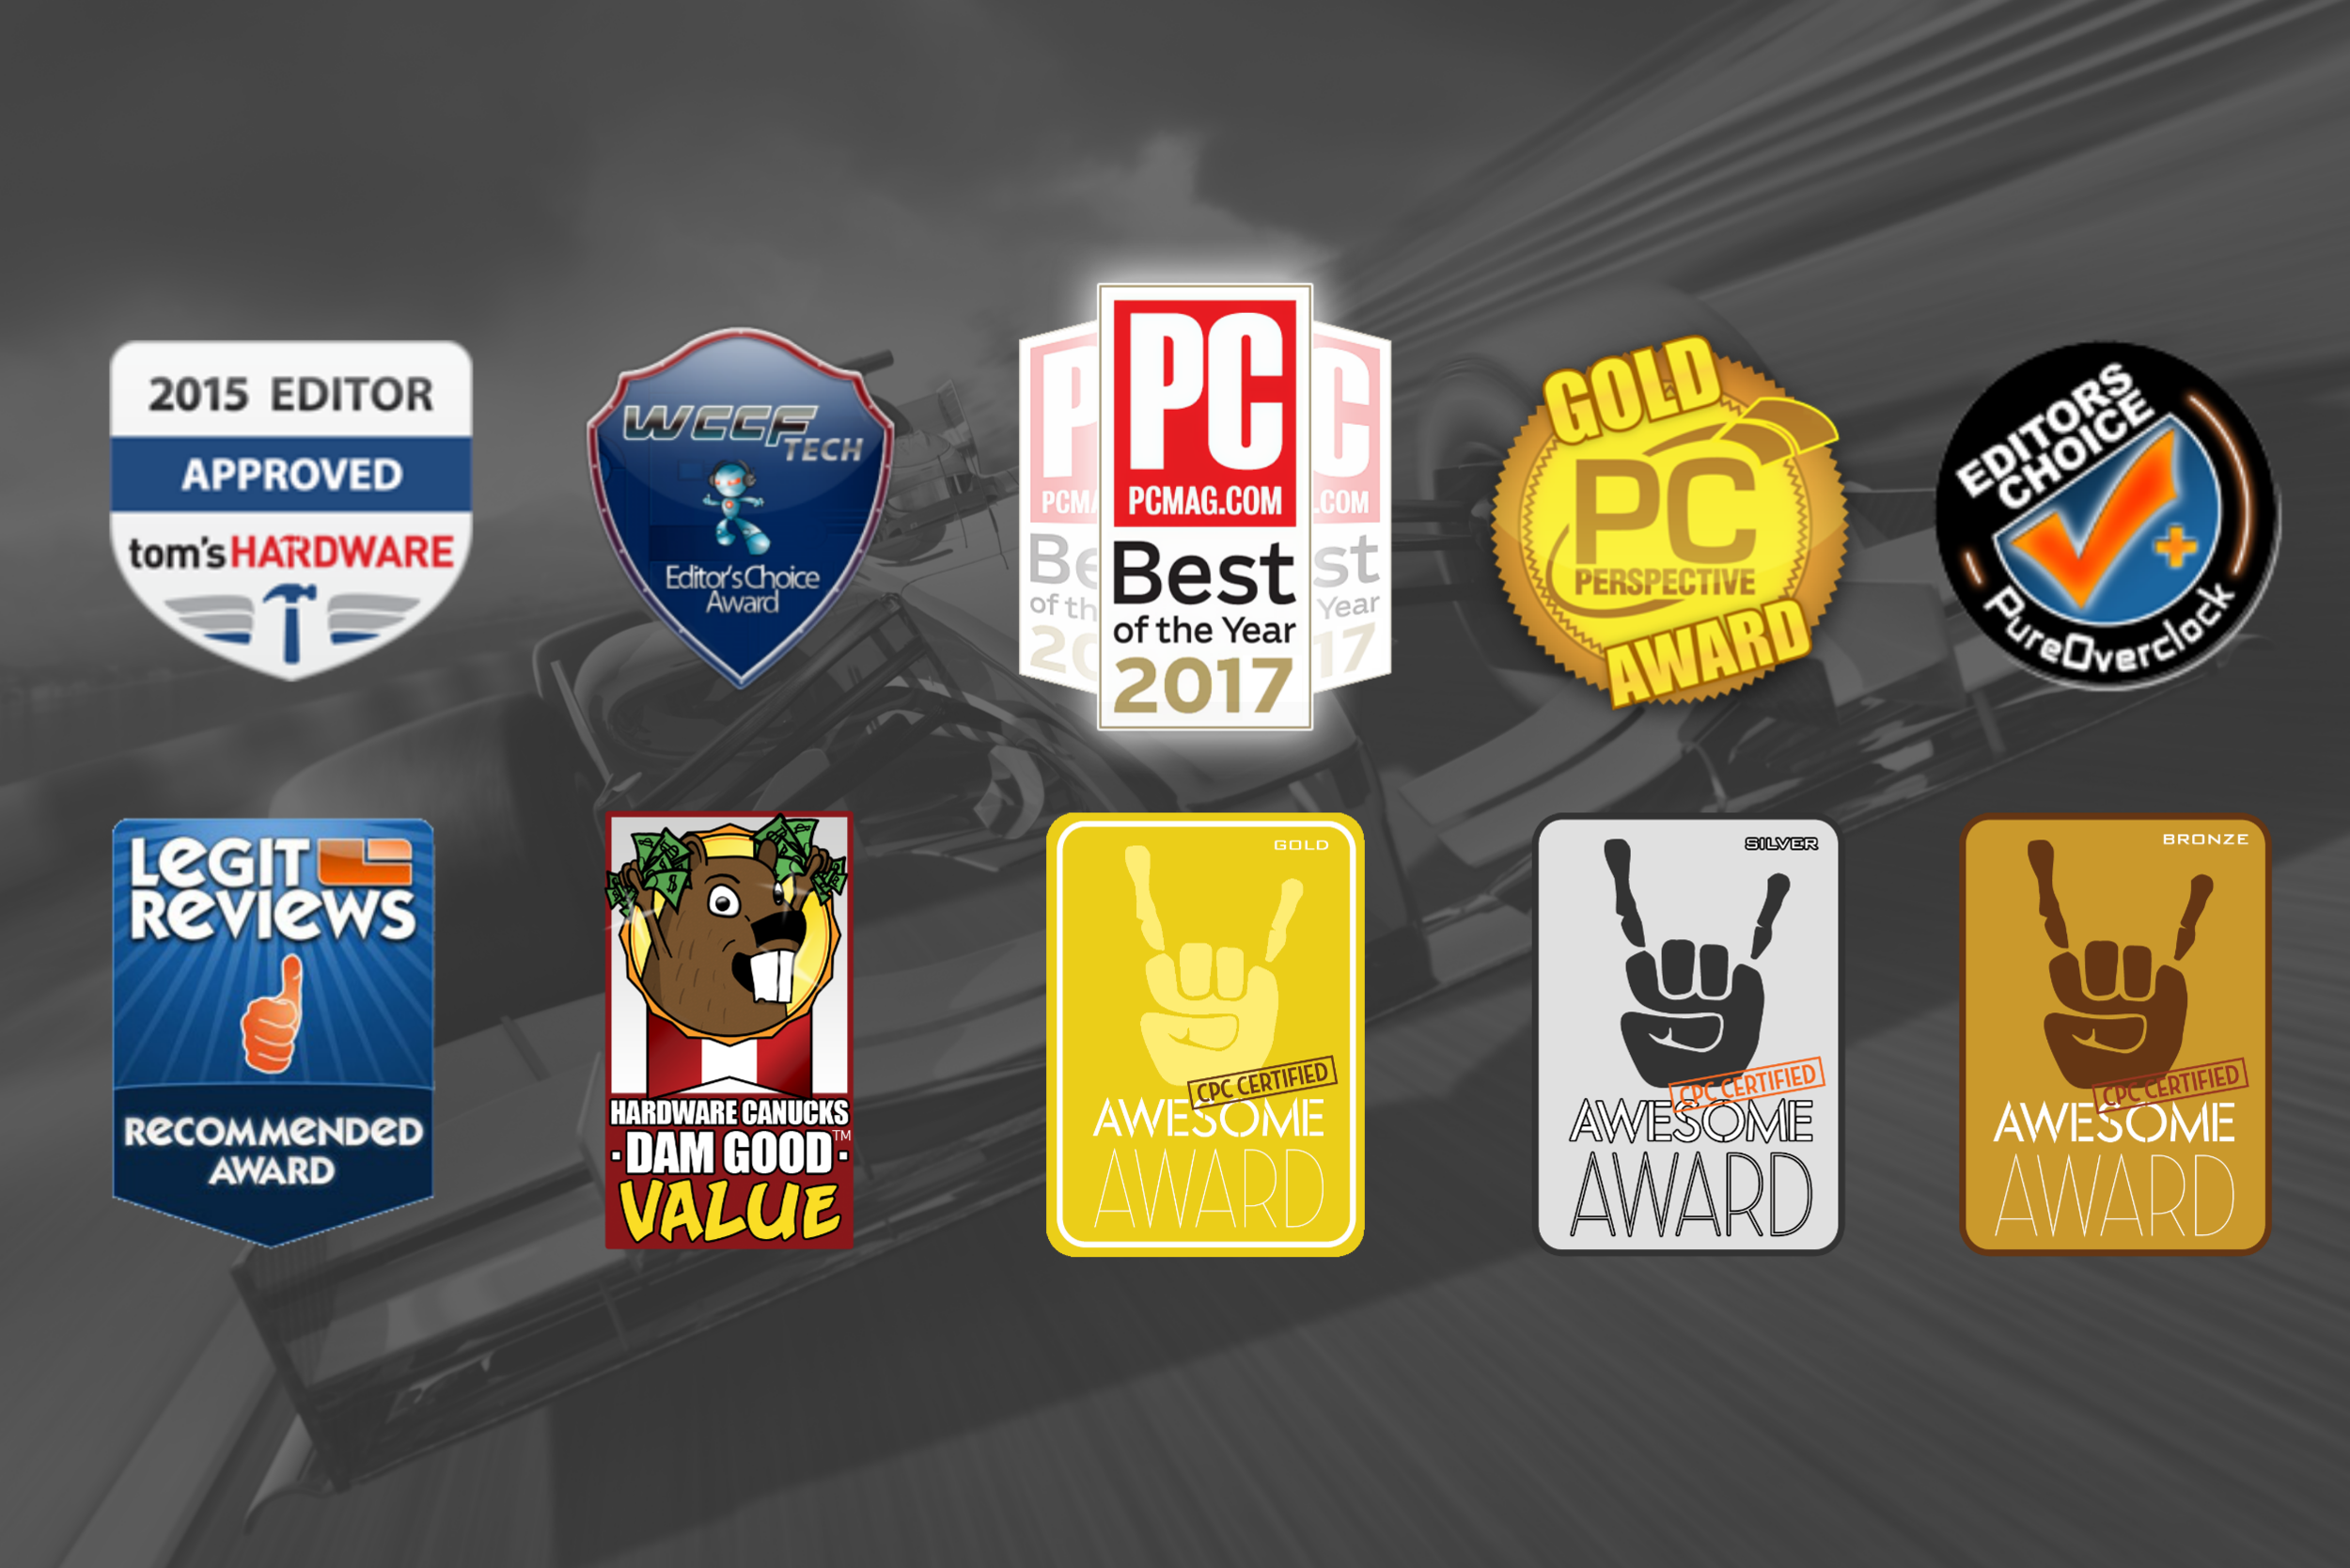 10-11-2018 Awards Banners #1.png